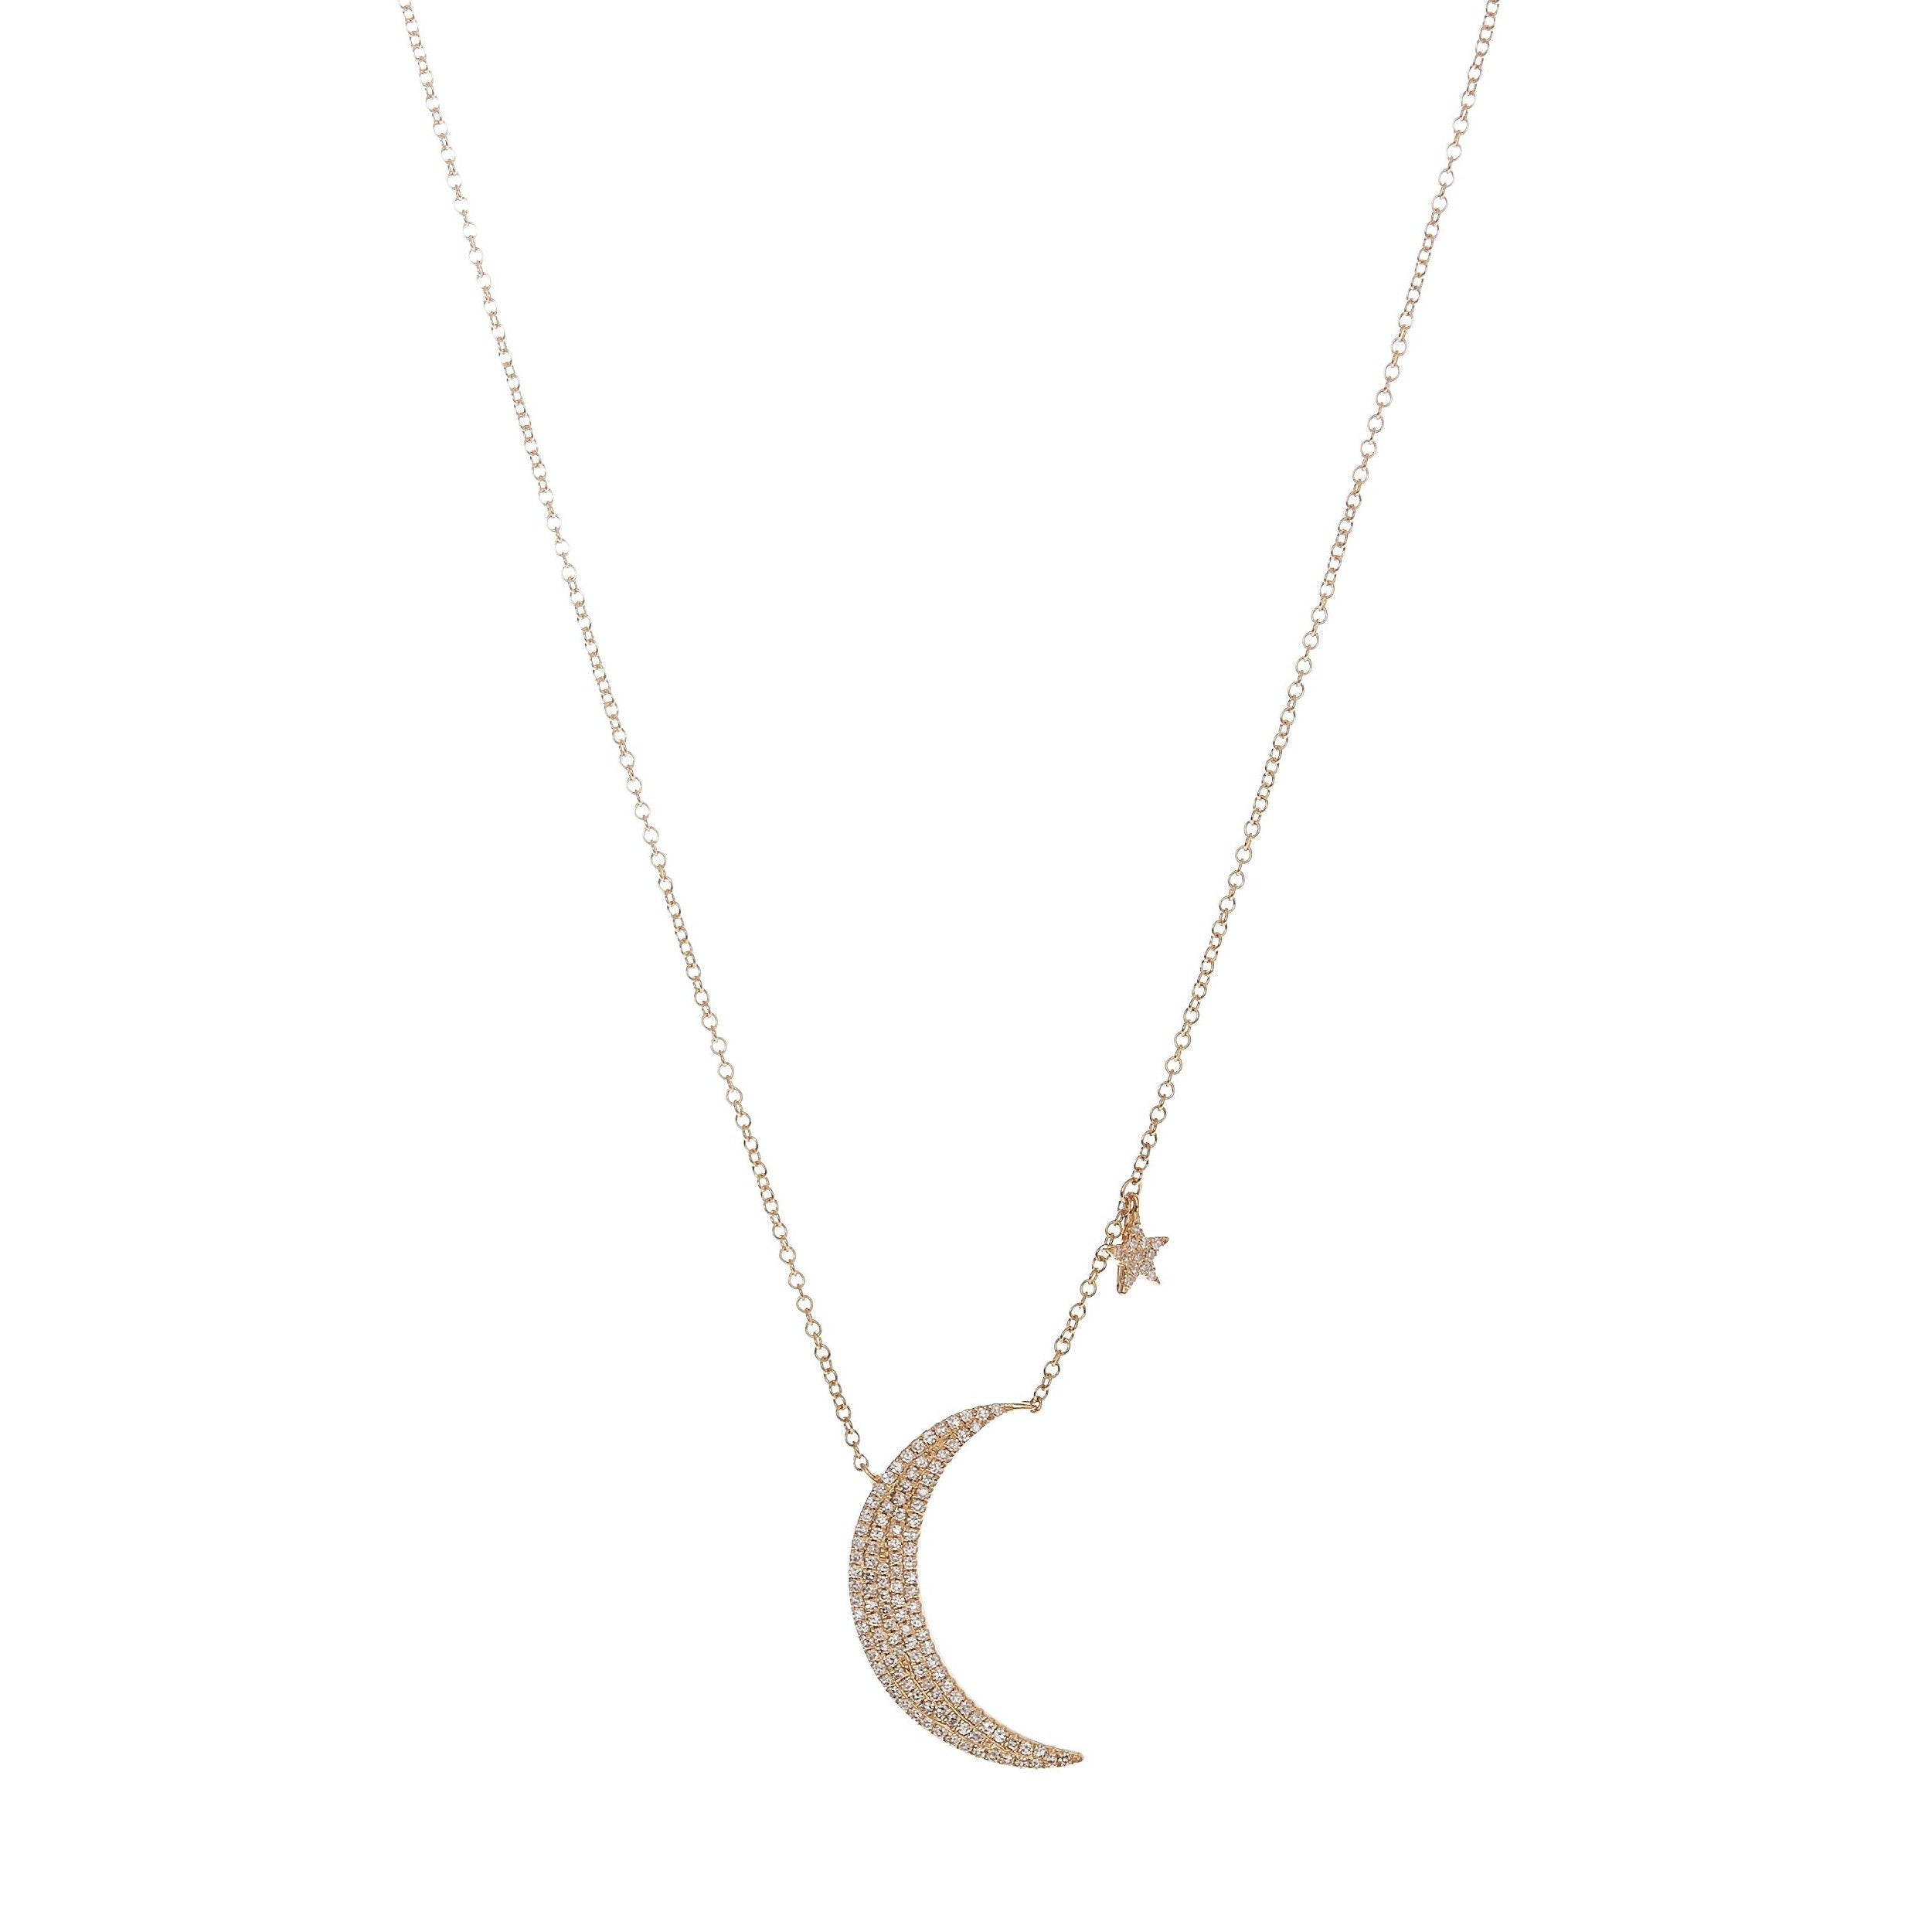 Pave Crescent Moon & Star Necklace